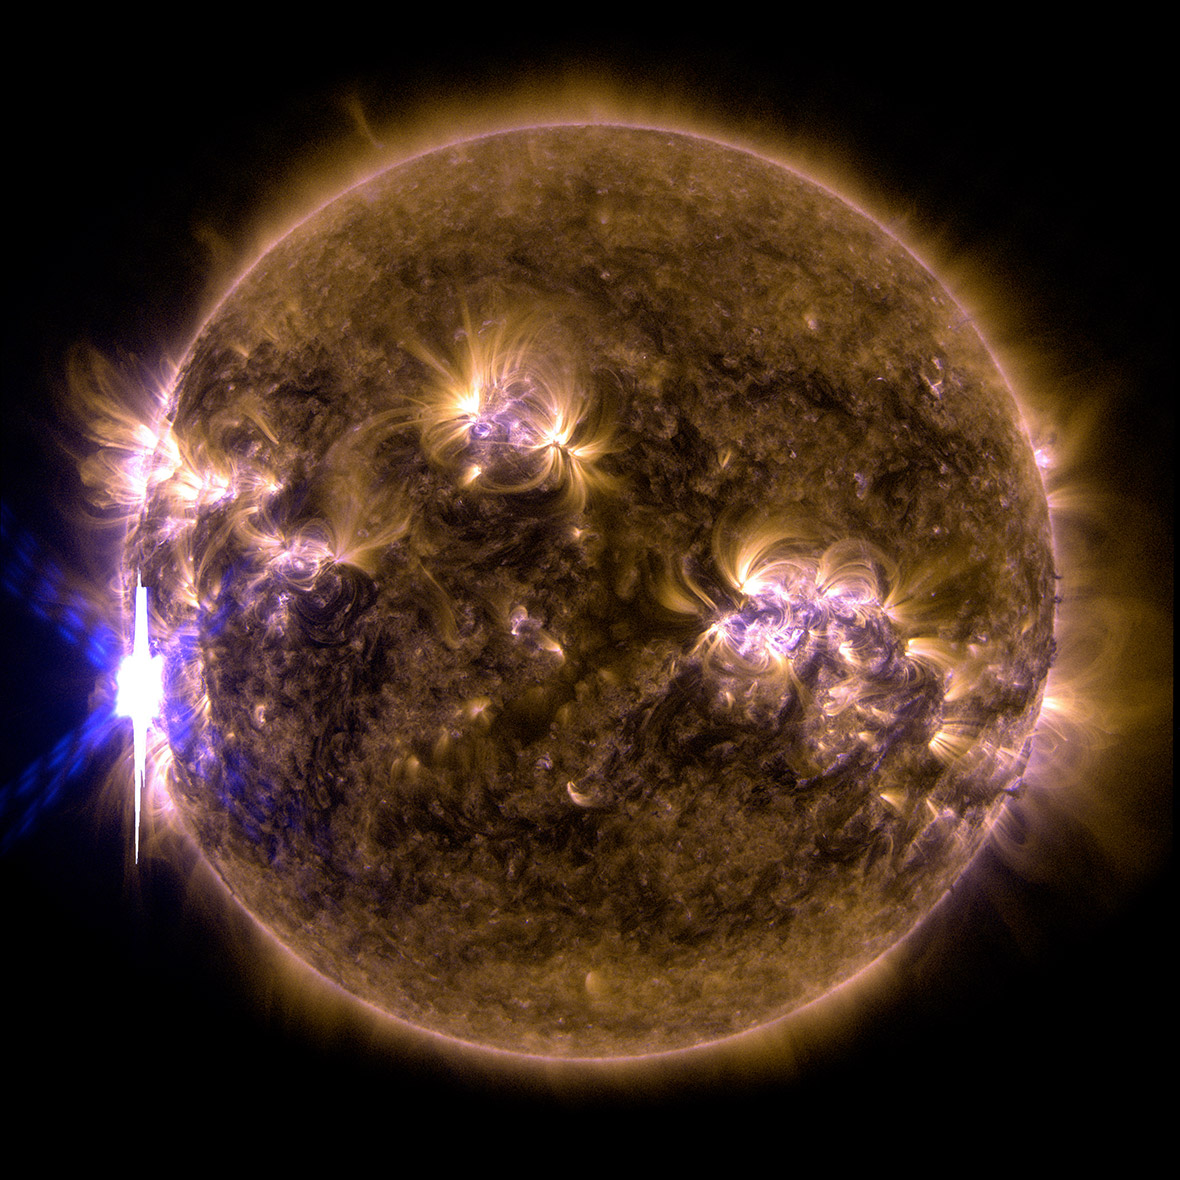 Sun From Space: Solar Flares And Sunspots: Spectacular Images Of The Sun